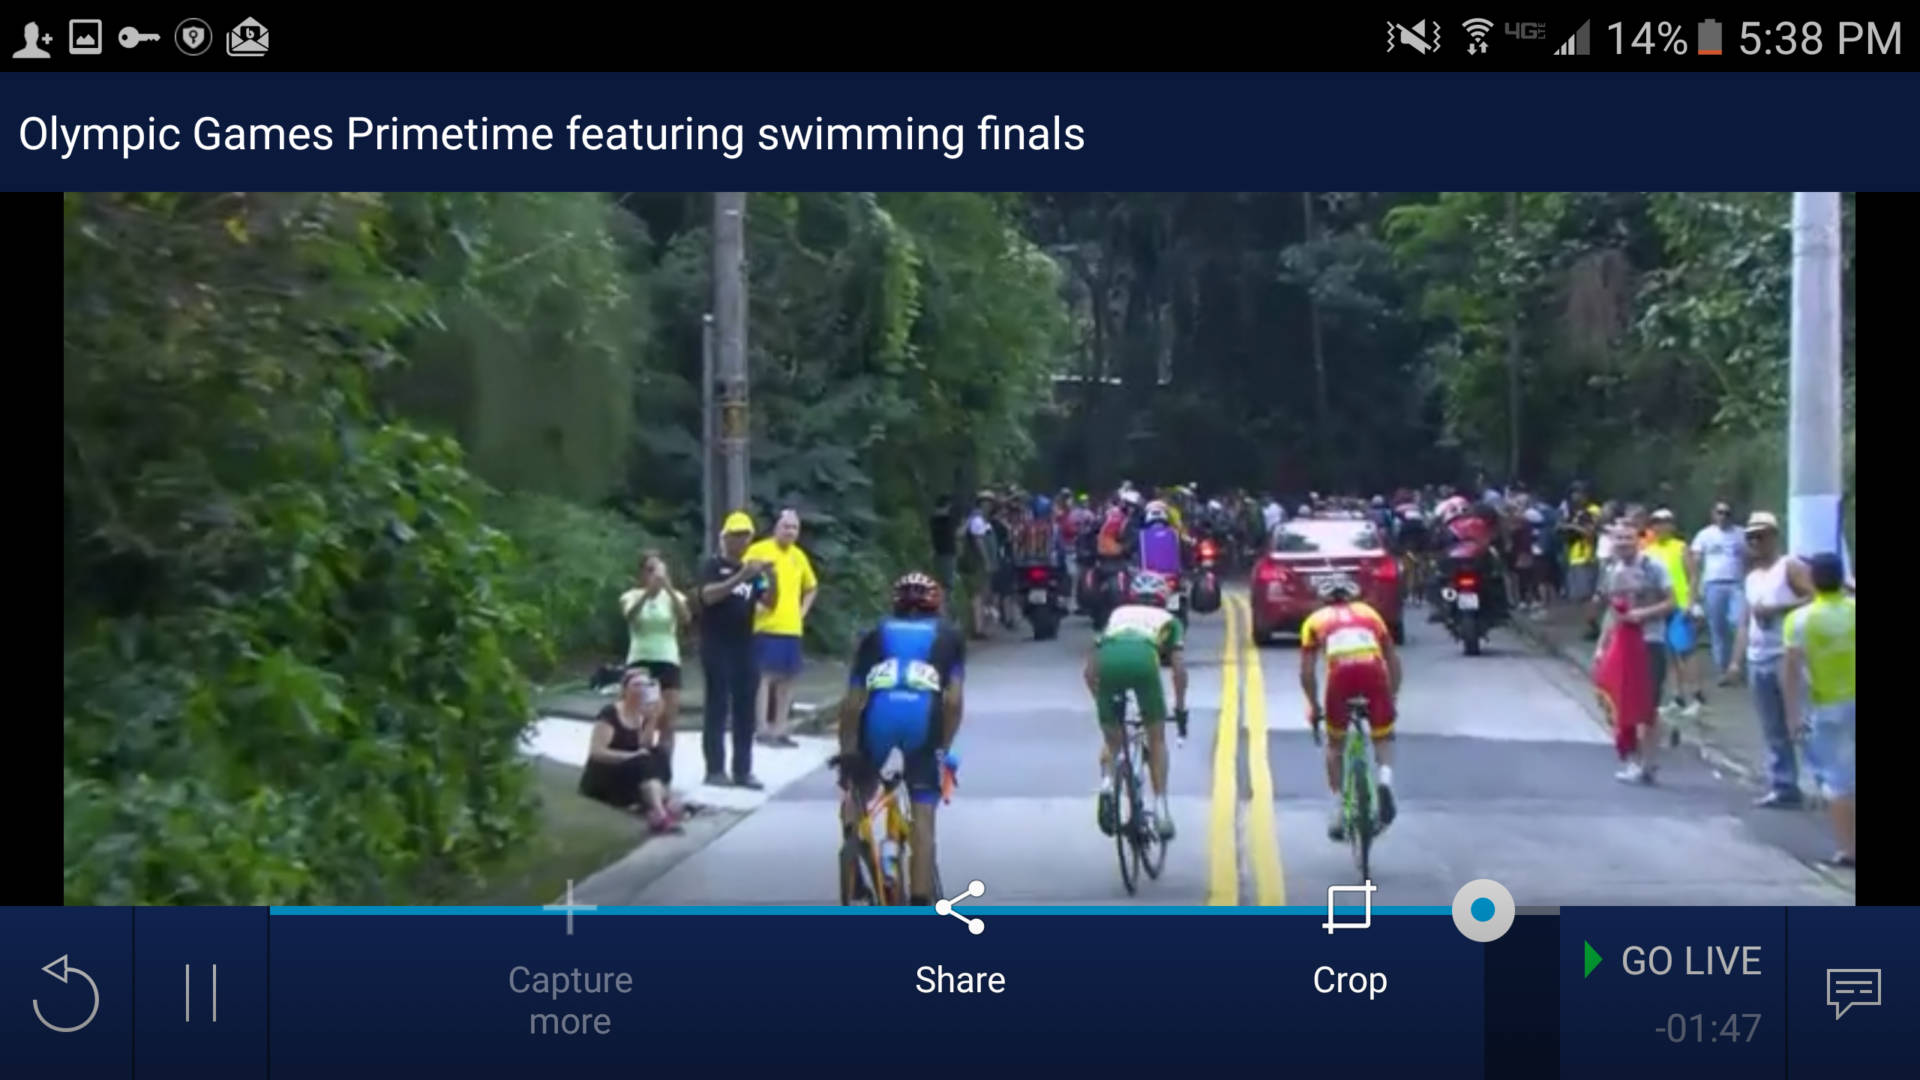 Stream Olympics on ANDROID & Watch in HD: How-To Guide